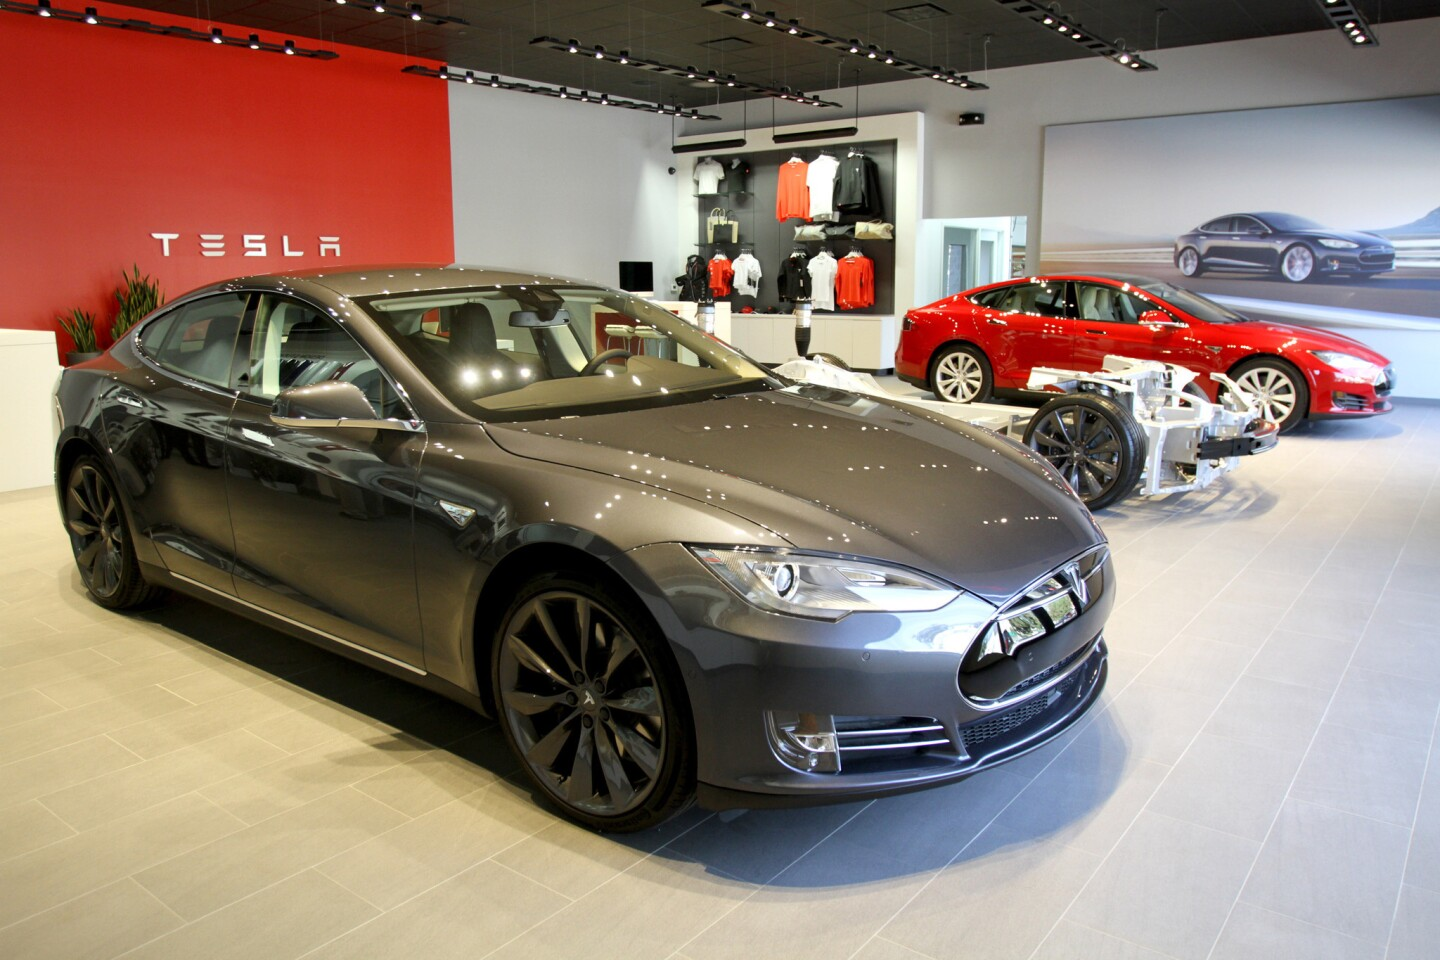 Tesla Motors opened a new show room and service center on San Fernando Rd. in Burbank on Friday, October 23, 2015. The showroom, where a customer can order their own personalized Tesla electric vehicle, will soon have a customer lounge and charging stations.